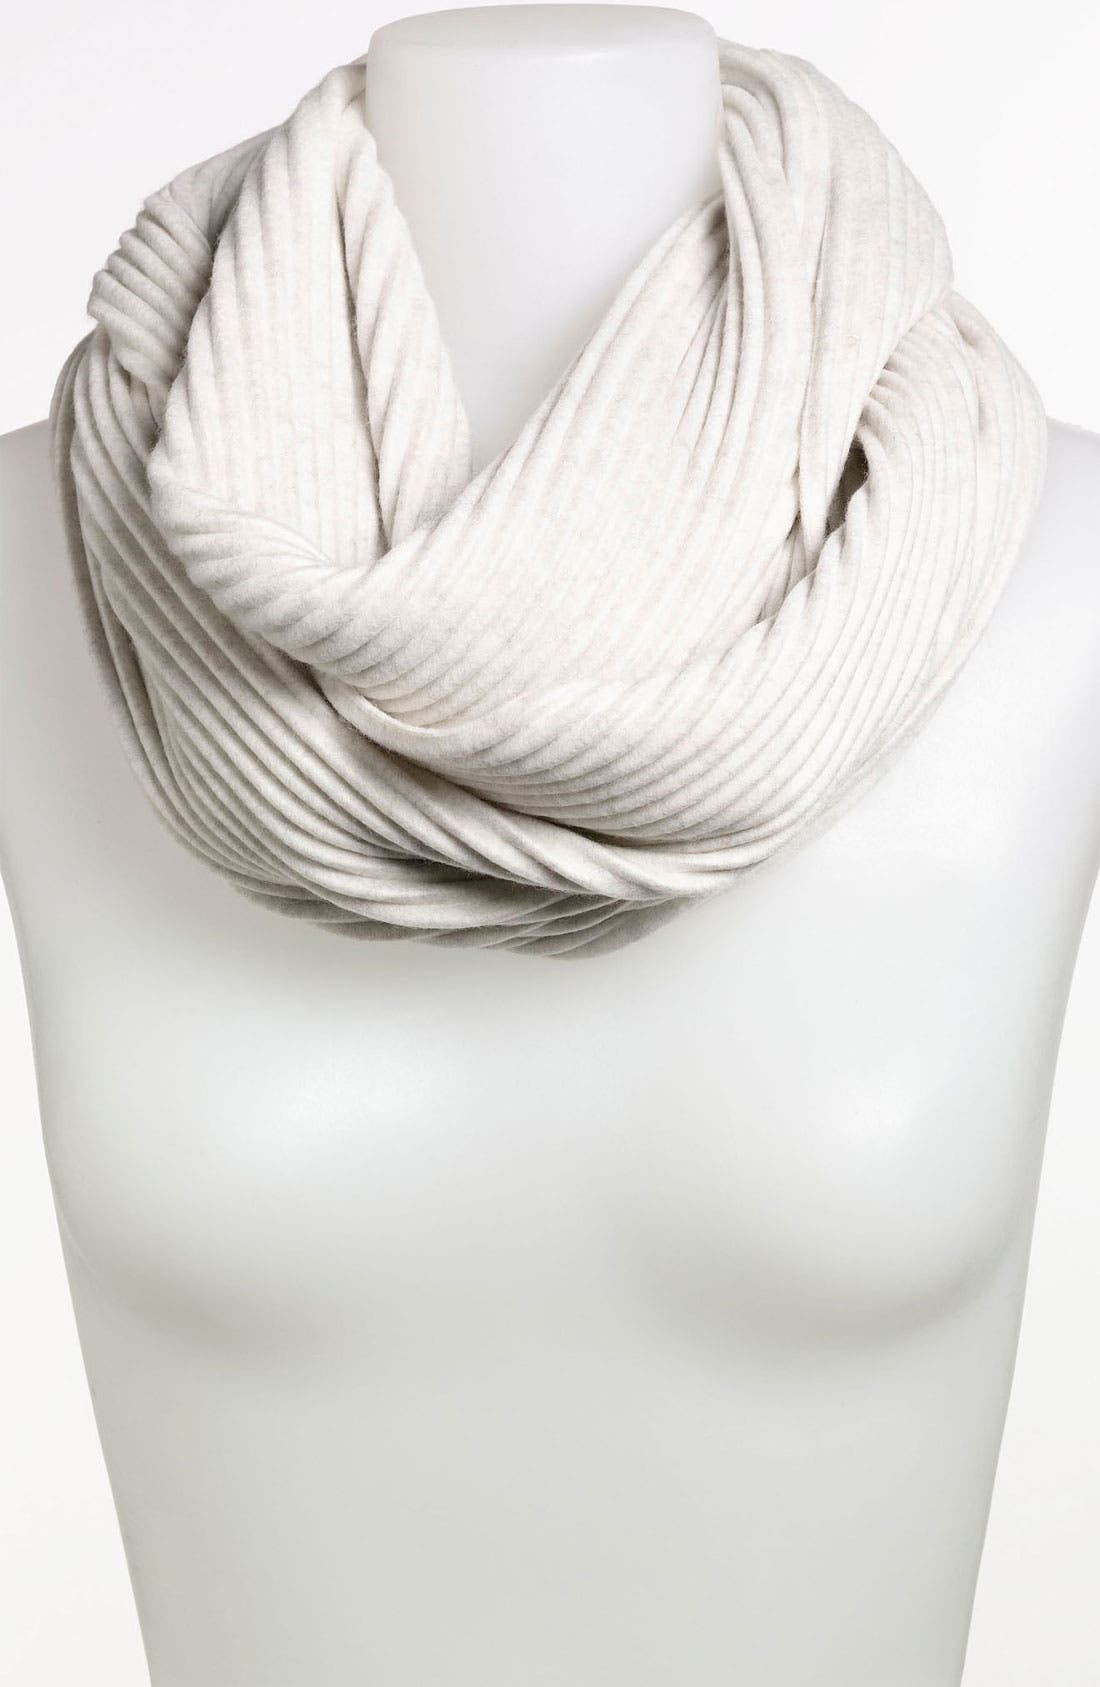 Main Image - Design House Stockholm 'Pleece' Infinity Scarf